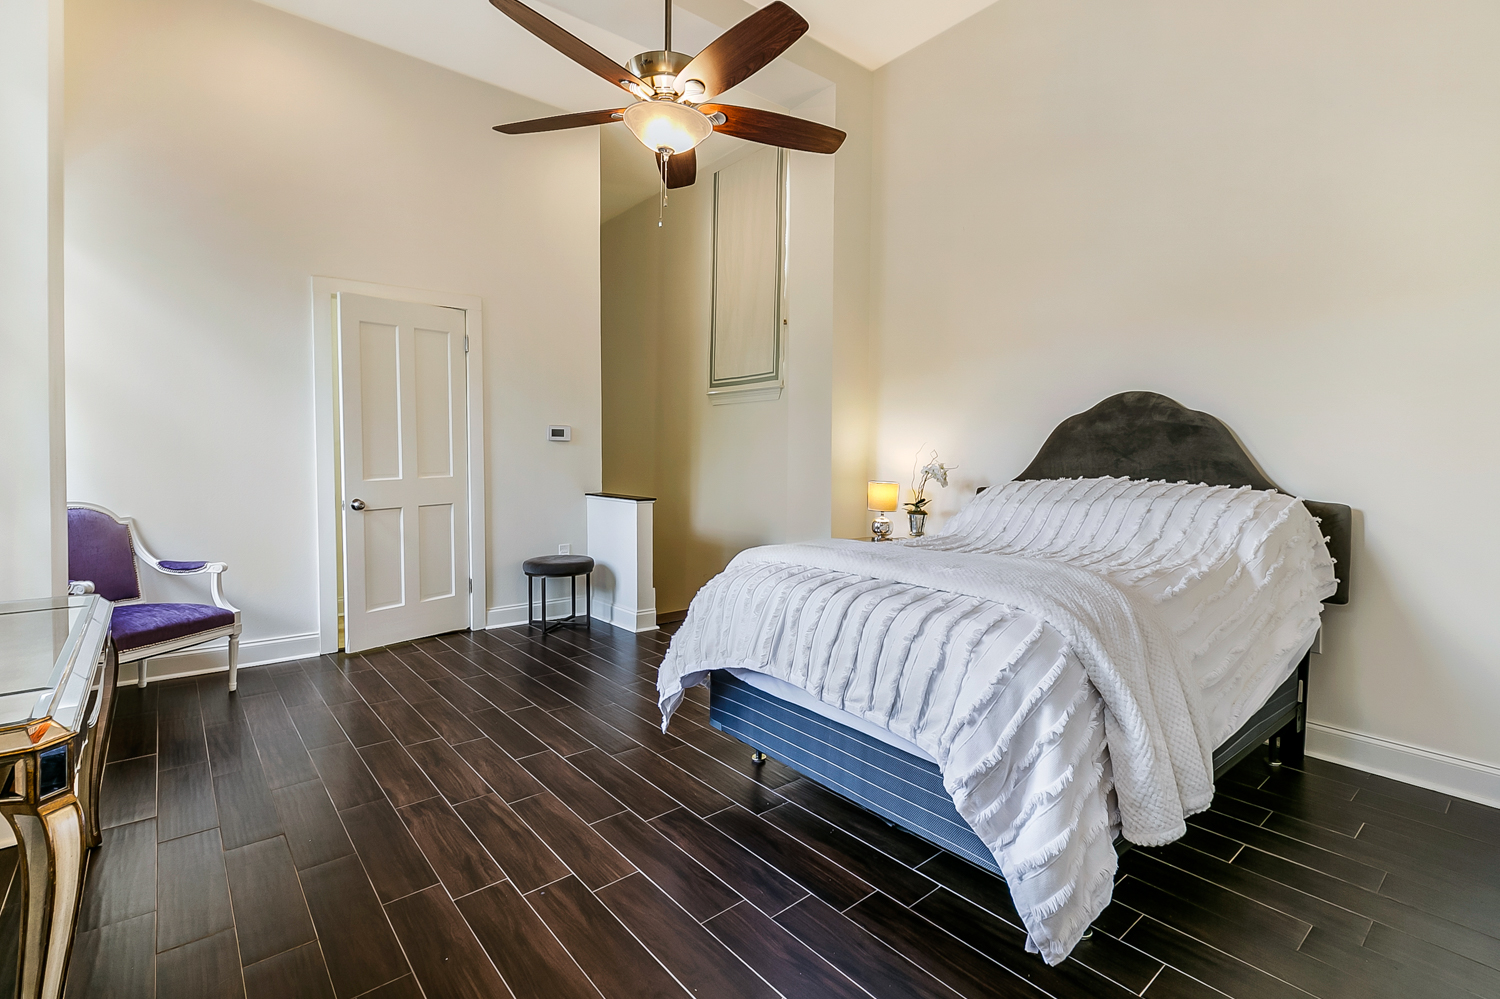 Garden District, Apartment, 1 beds, 1.0 baths, $2800 per month New Orleans Rental - devie image_10